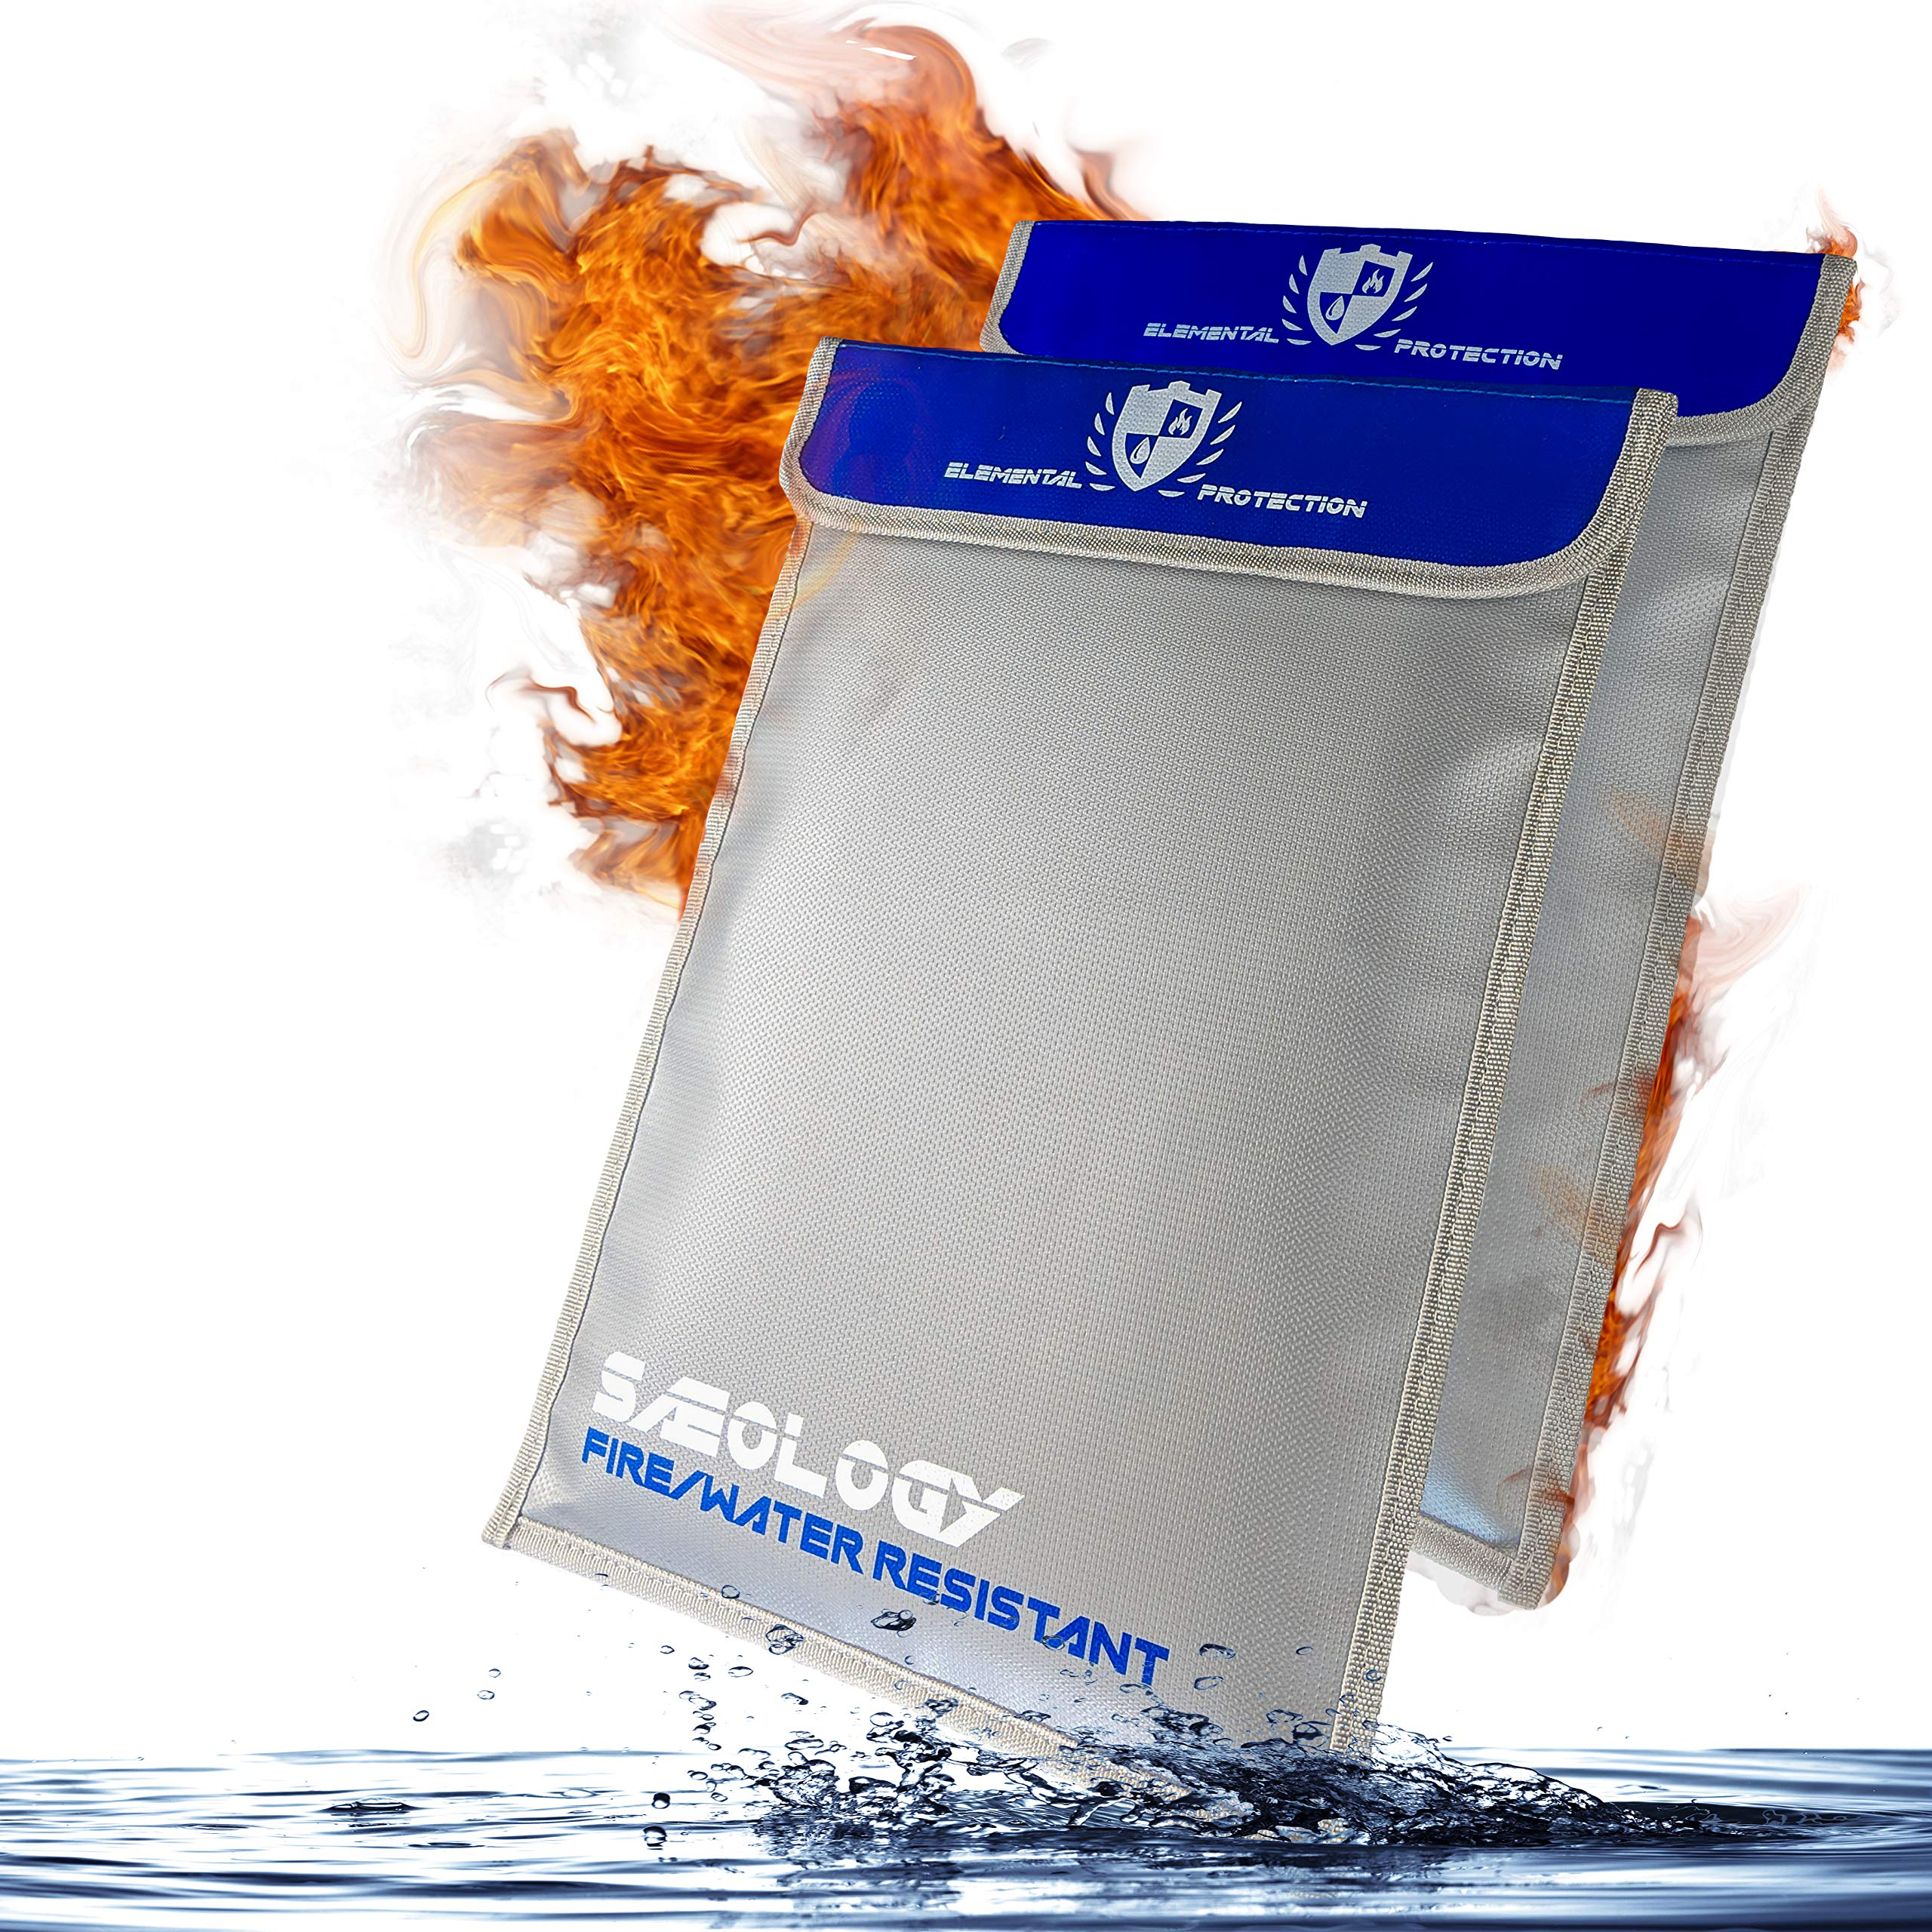 Saeology Fireproof Waterproof Document Bag - Two Pack, Extra Storage Pouch for Documents Money Passport and Valuables - Extra Strength Fire Retardant Coated Seams by Saeology